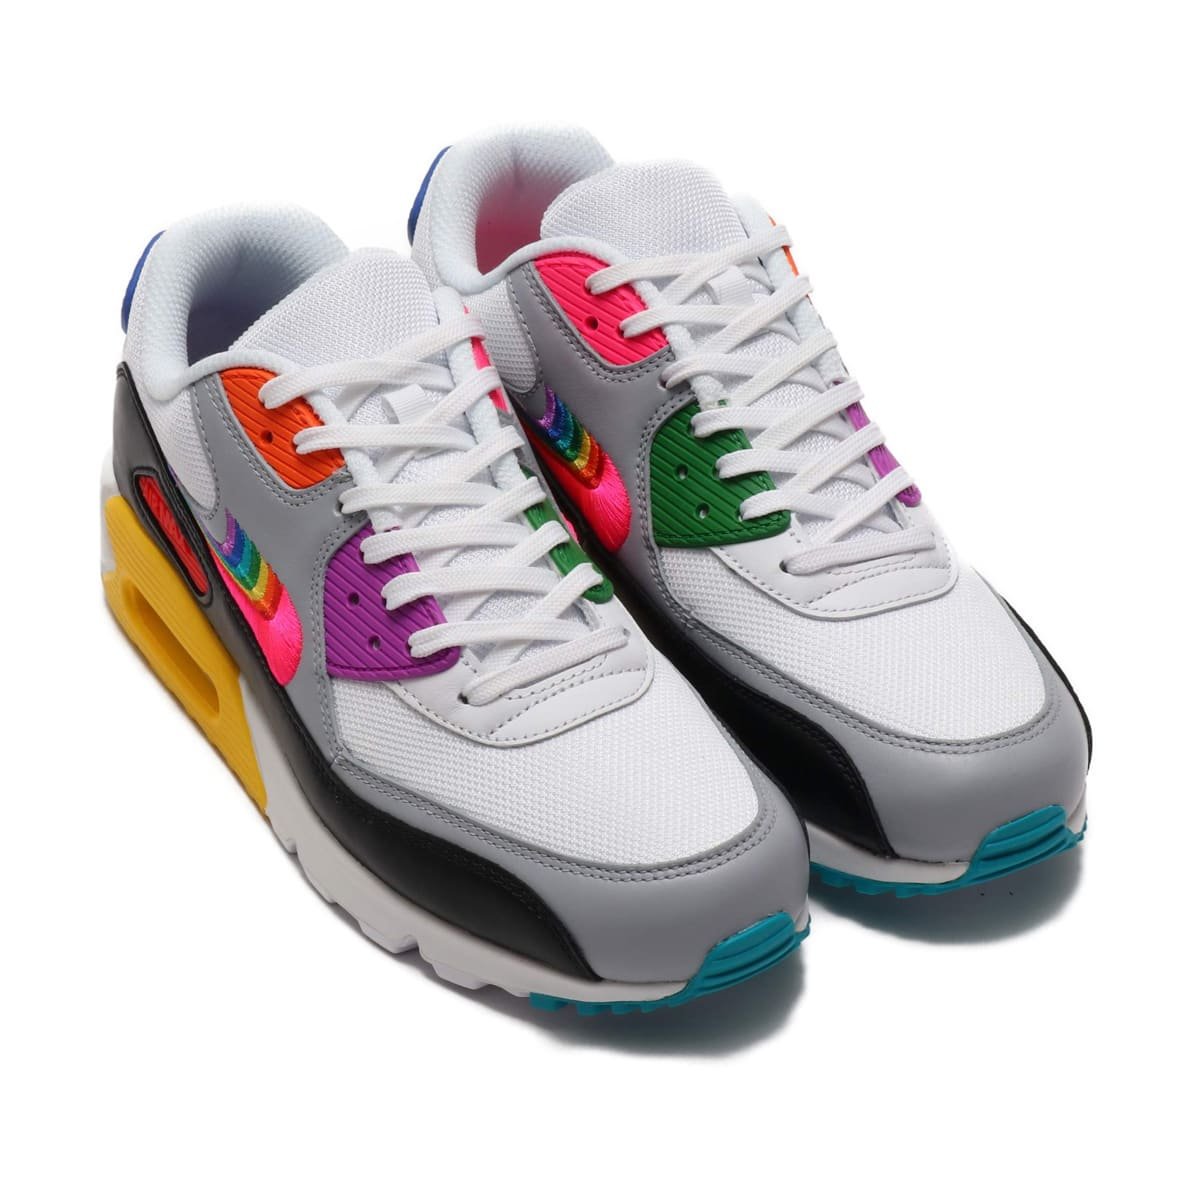 NIKE AIR MAX 90 BETRUE WHITE/MULTI-COLOR-BLACK-WOLF GREY 19SU-S_photo_large